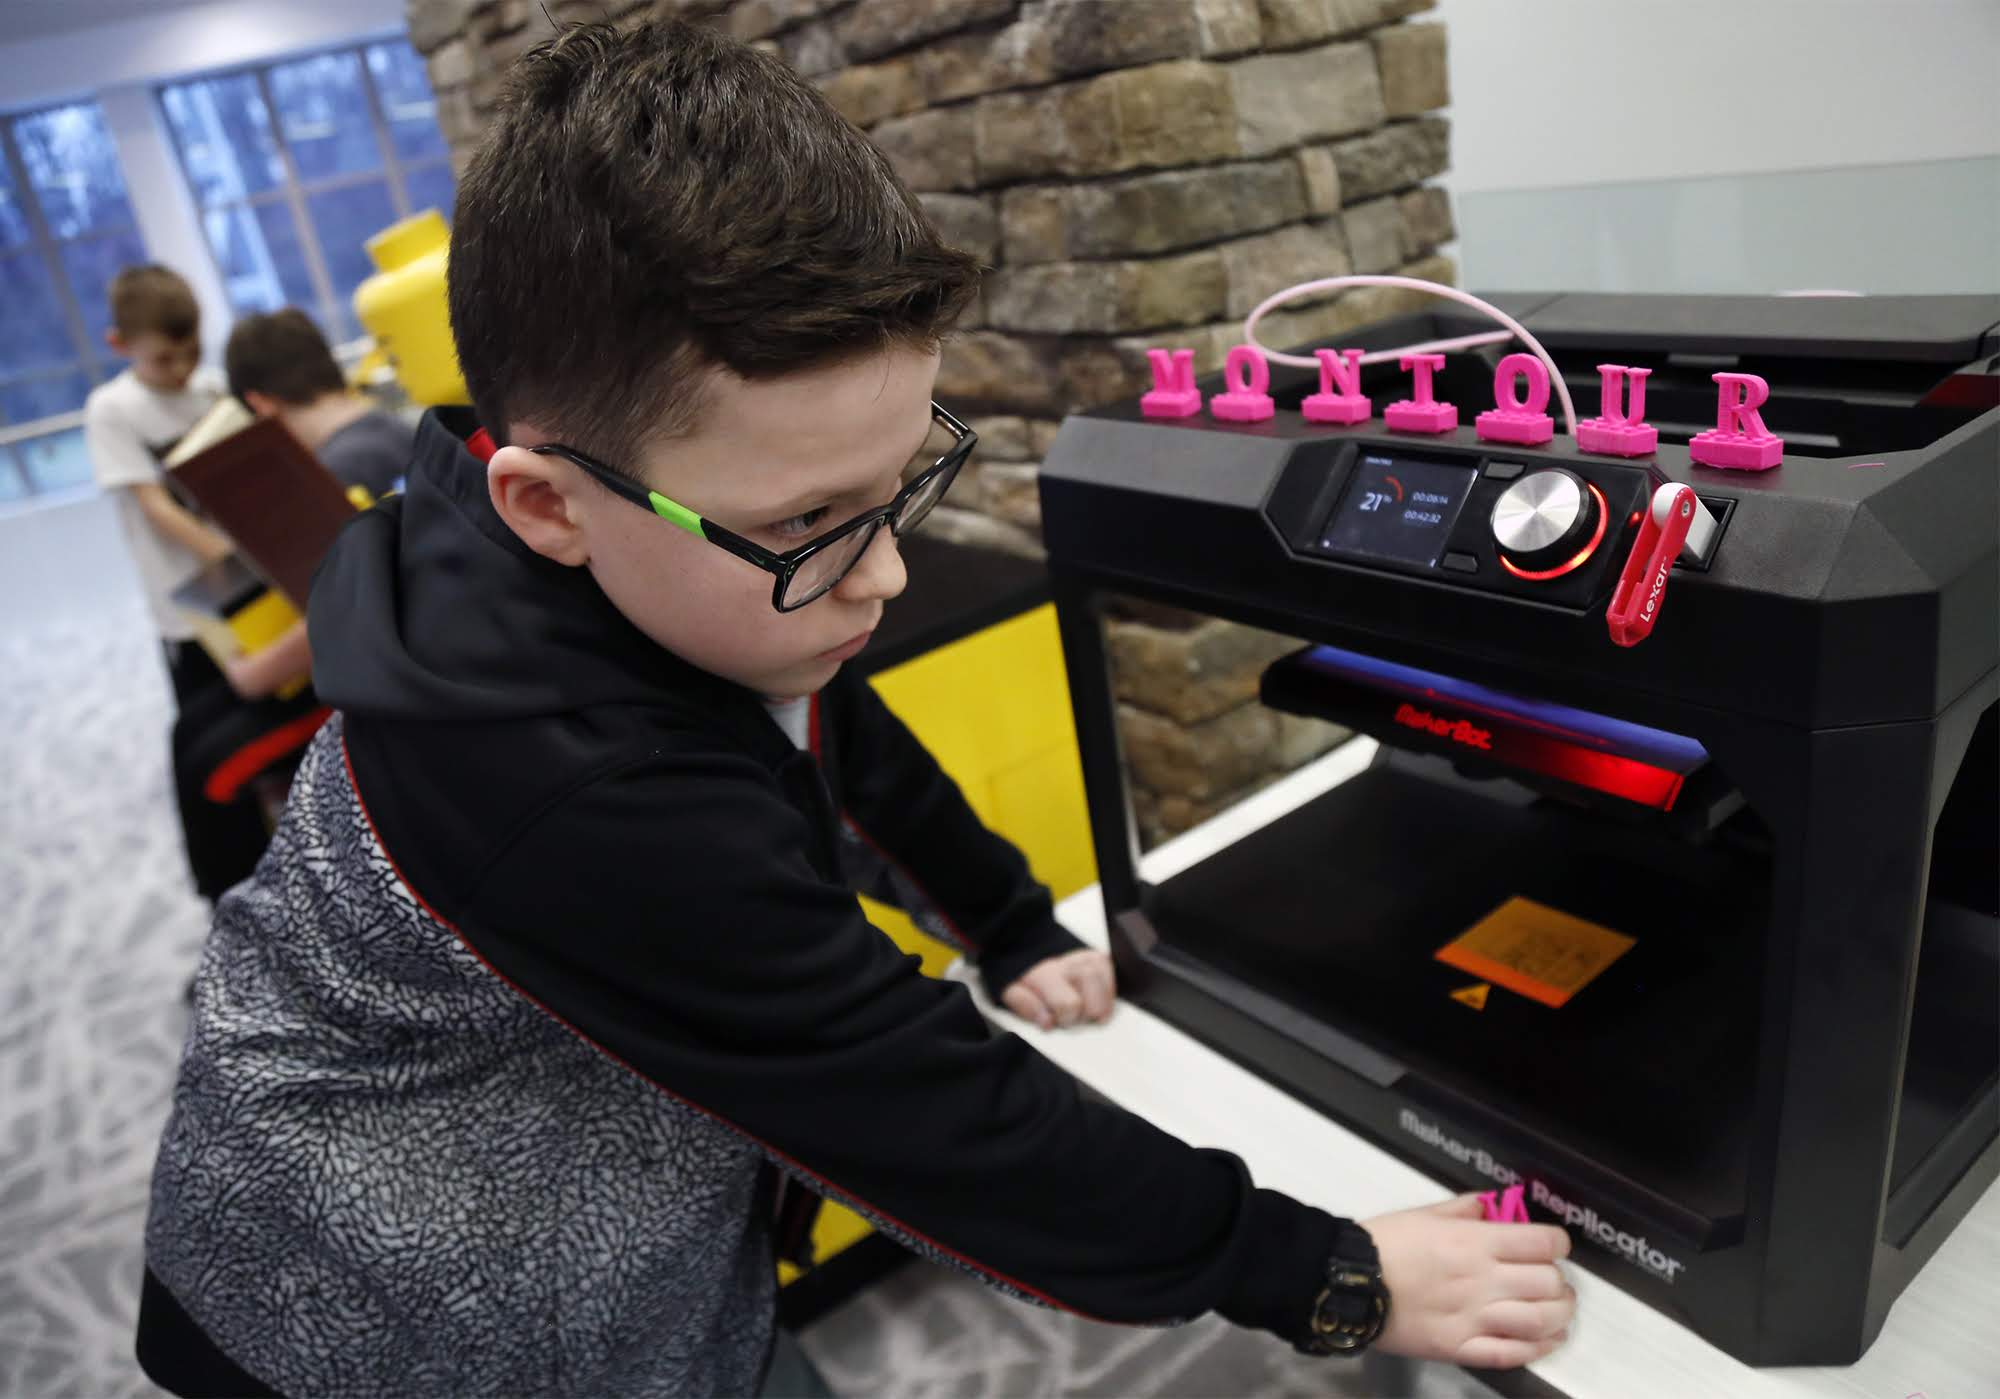 Braden Cartwright checks out a 3D printer inside the Brick Makerspace, a room filled with Legos and other building materials and equipment at Montour Elementary on Feb. 22, 2018.